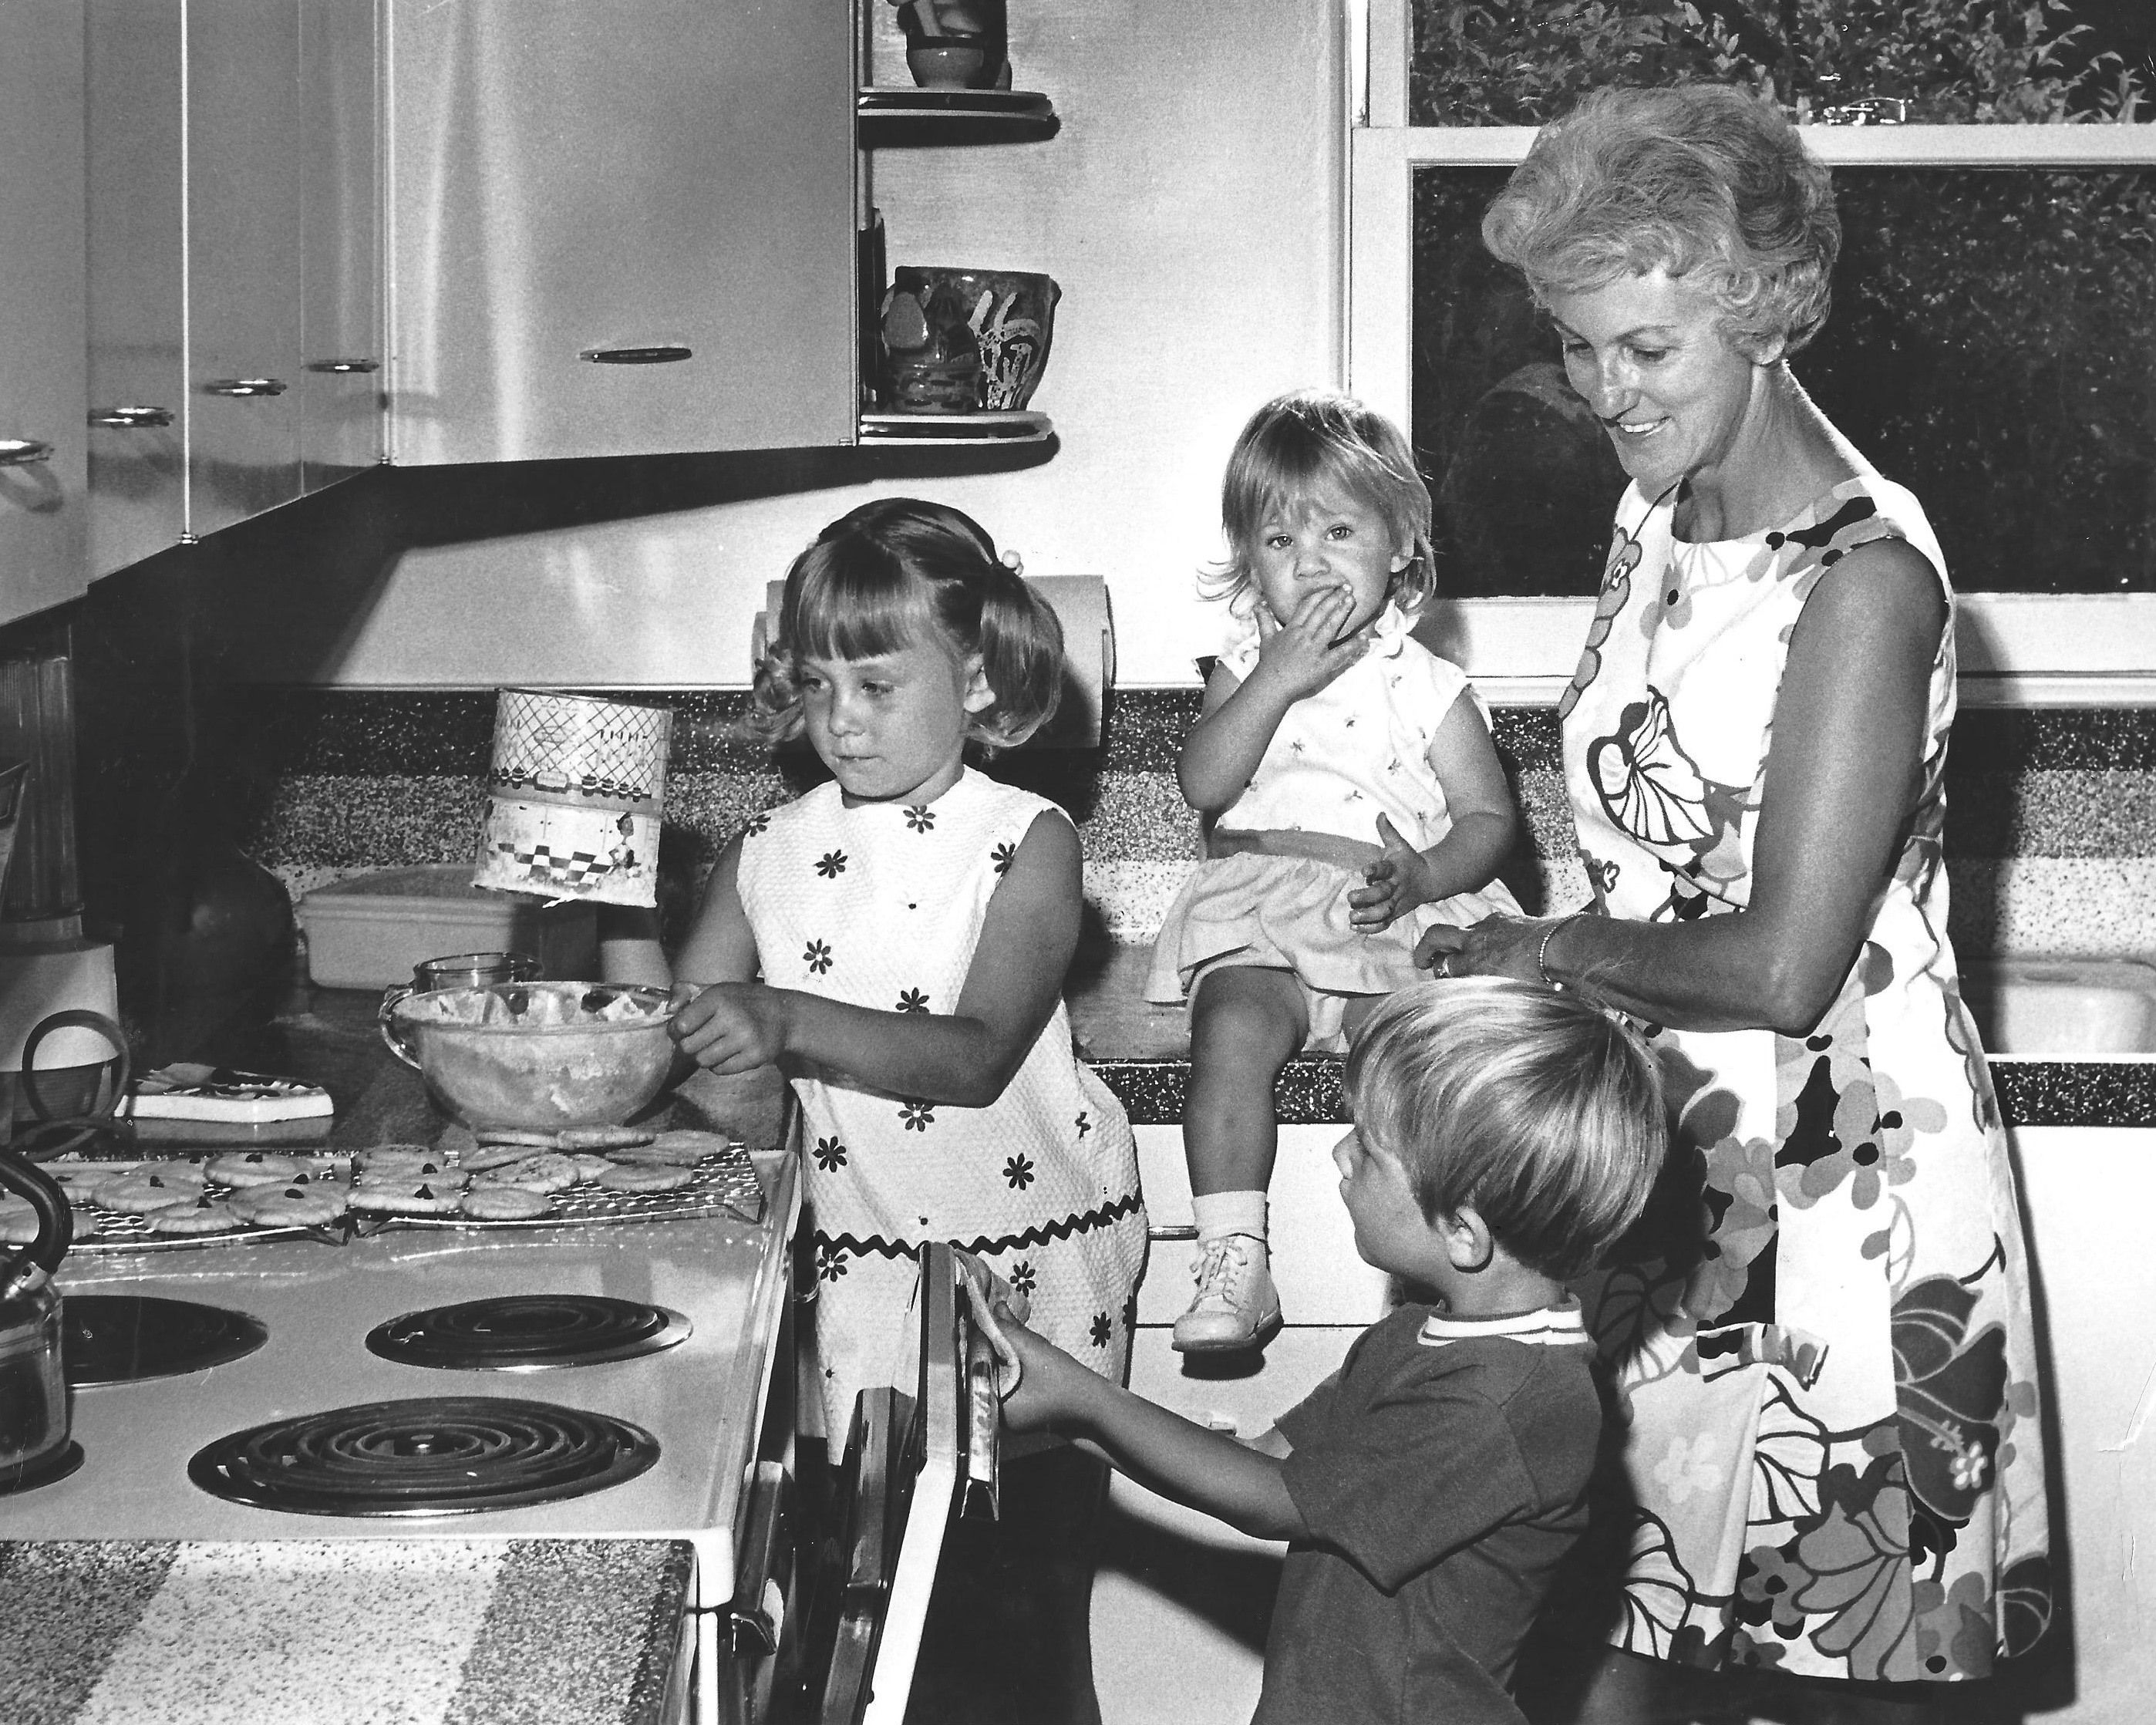 making cookies with children